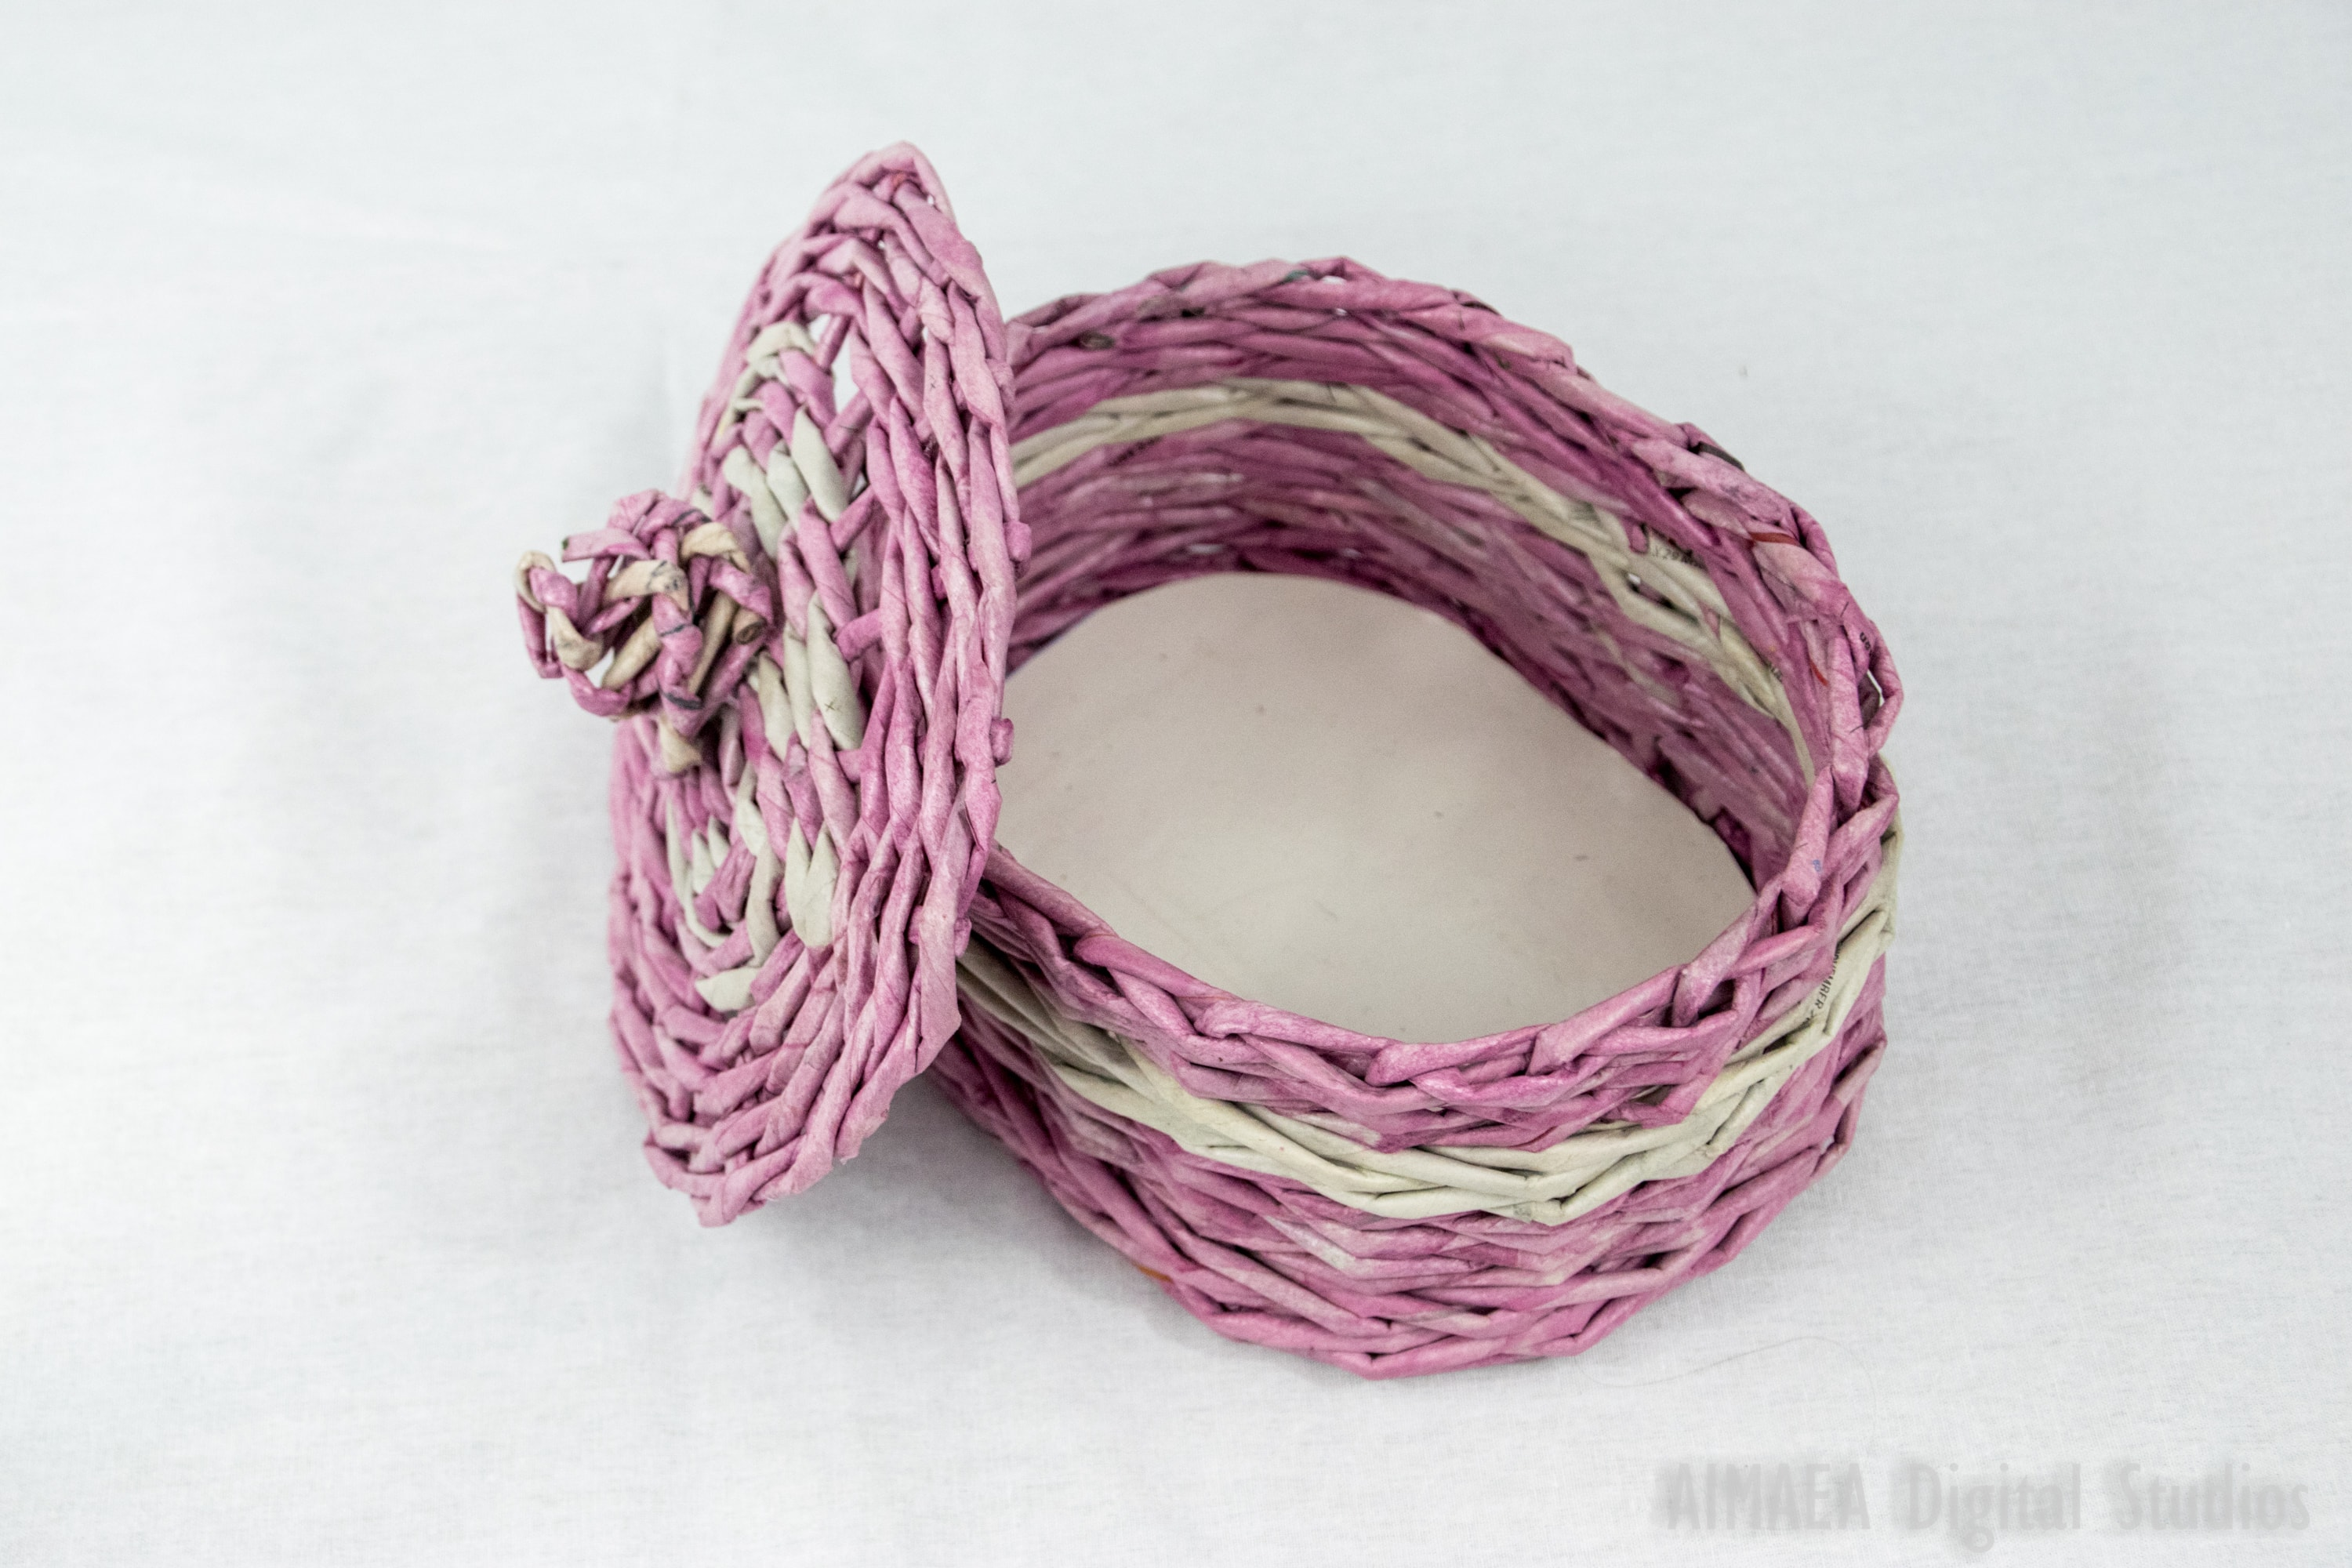 EDIGUMI Oval Pink-White Basket with Lid